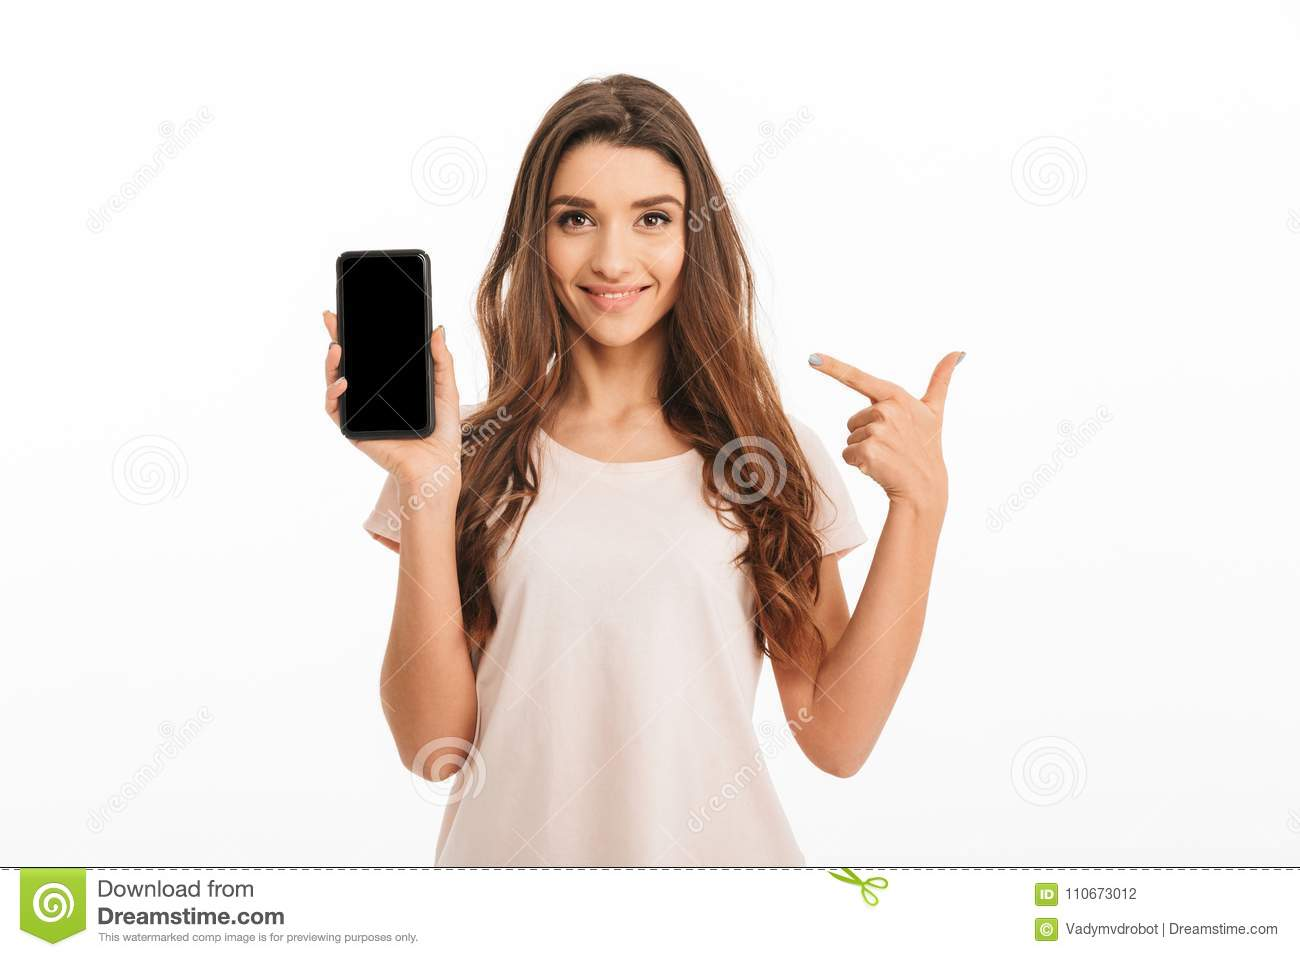 9861da826fbab Smiling brunette woman in t-shirt showing blank smartphone screen and  pointing on it while looking at the camera over grey background